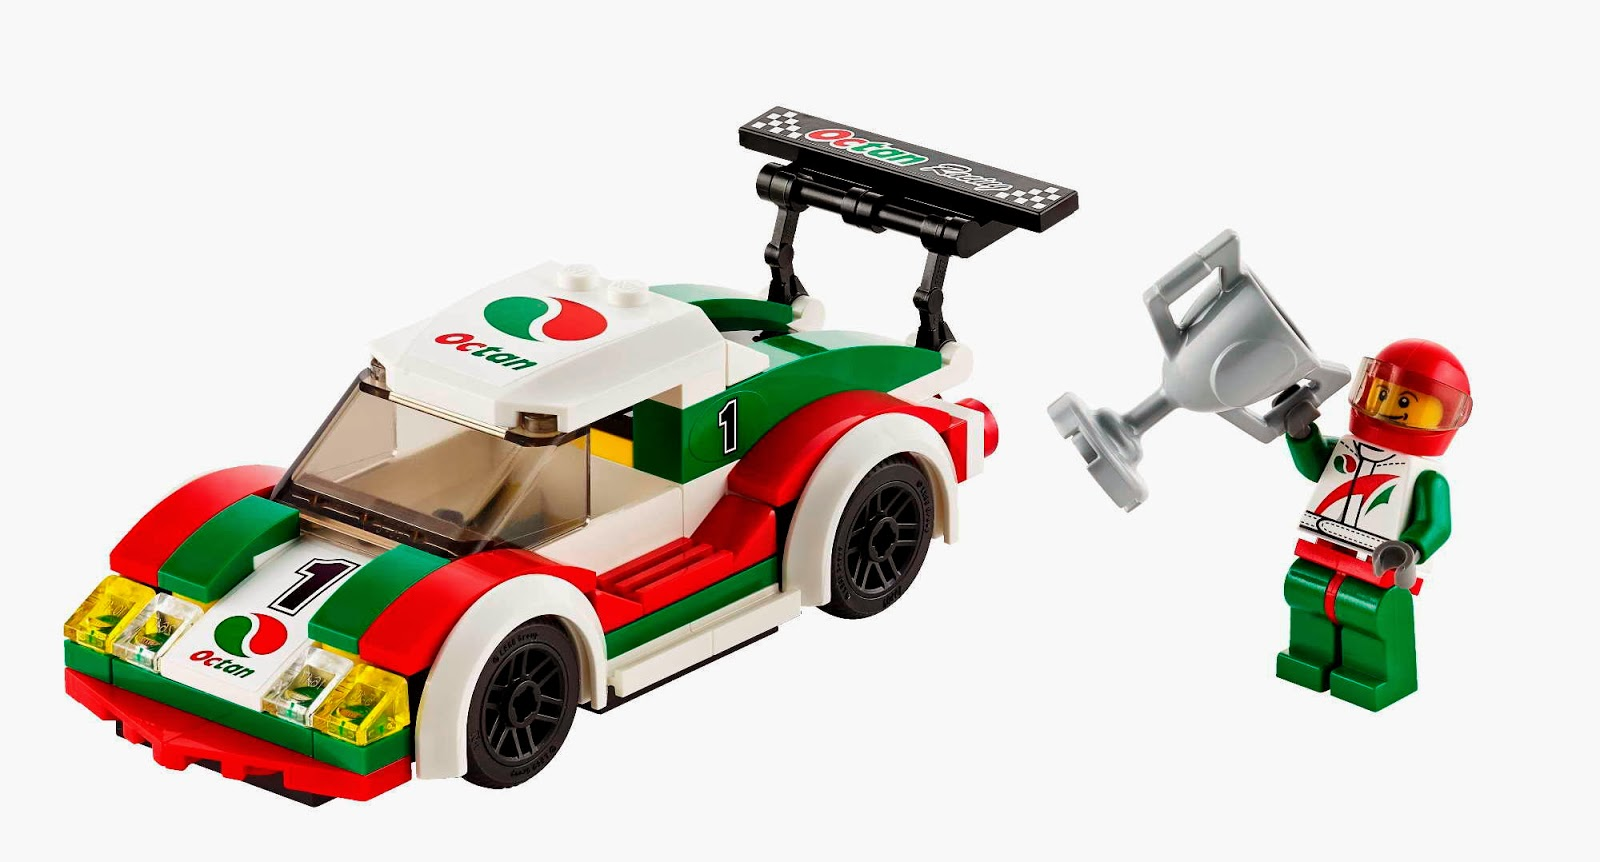 Race Cars For Sale >> LEGO gosSIP: 111113 LEGO 60053 Race Car box art and picture